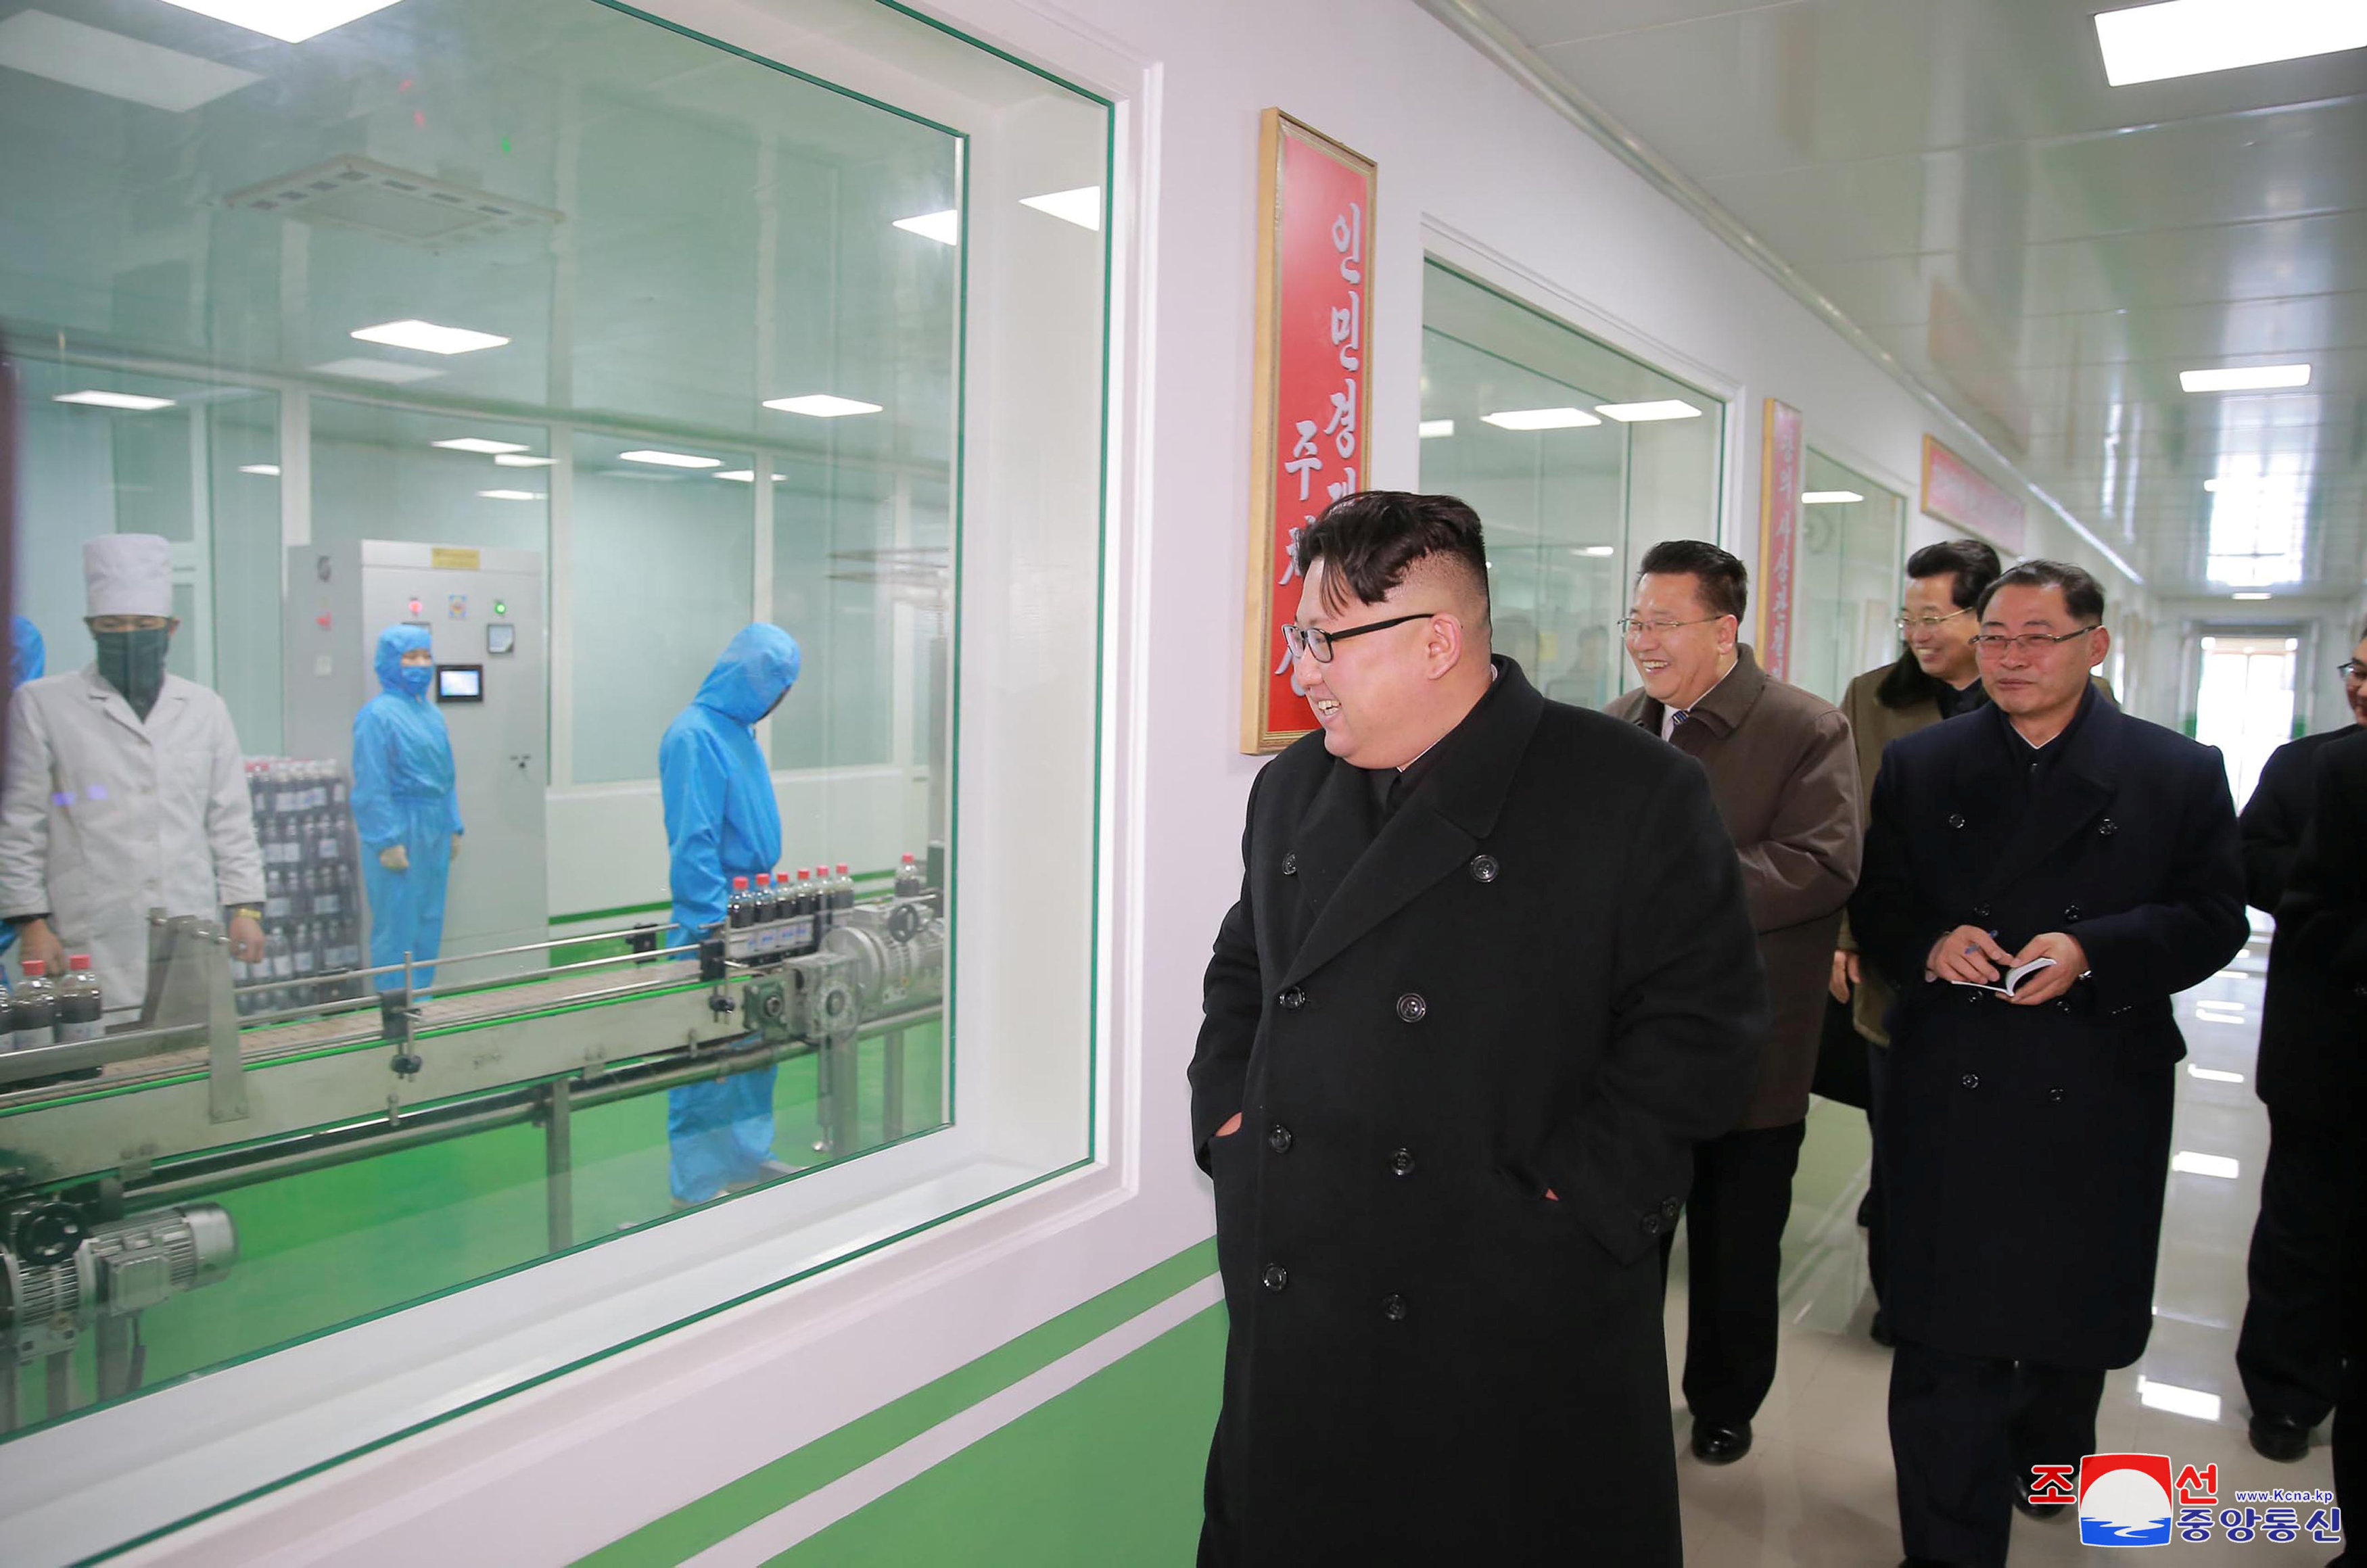 North Korean leader Kim Jong Un gives field guidance at the Pyongyang Pharmaceutical Factory, in this undated photo released by North Korea's Korean Central News Agency (KCNA) in Pyongyang January 25, 2018.